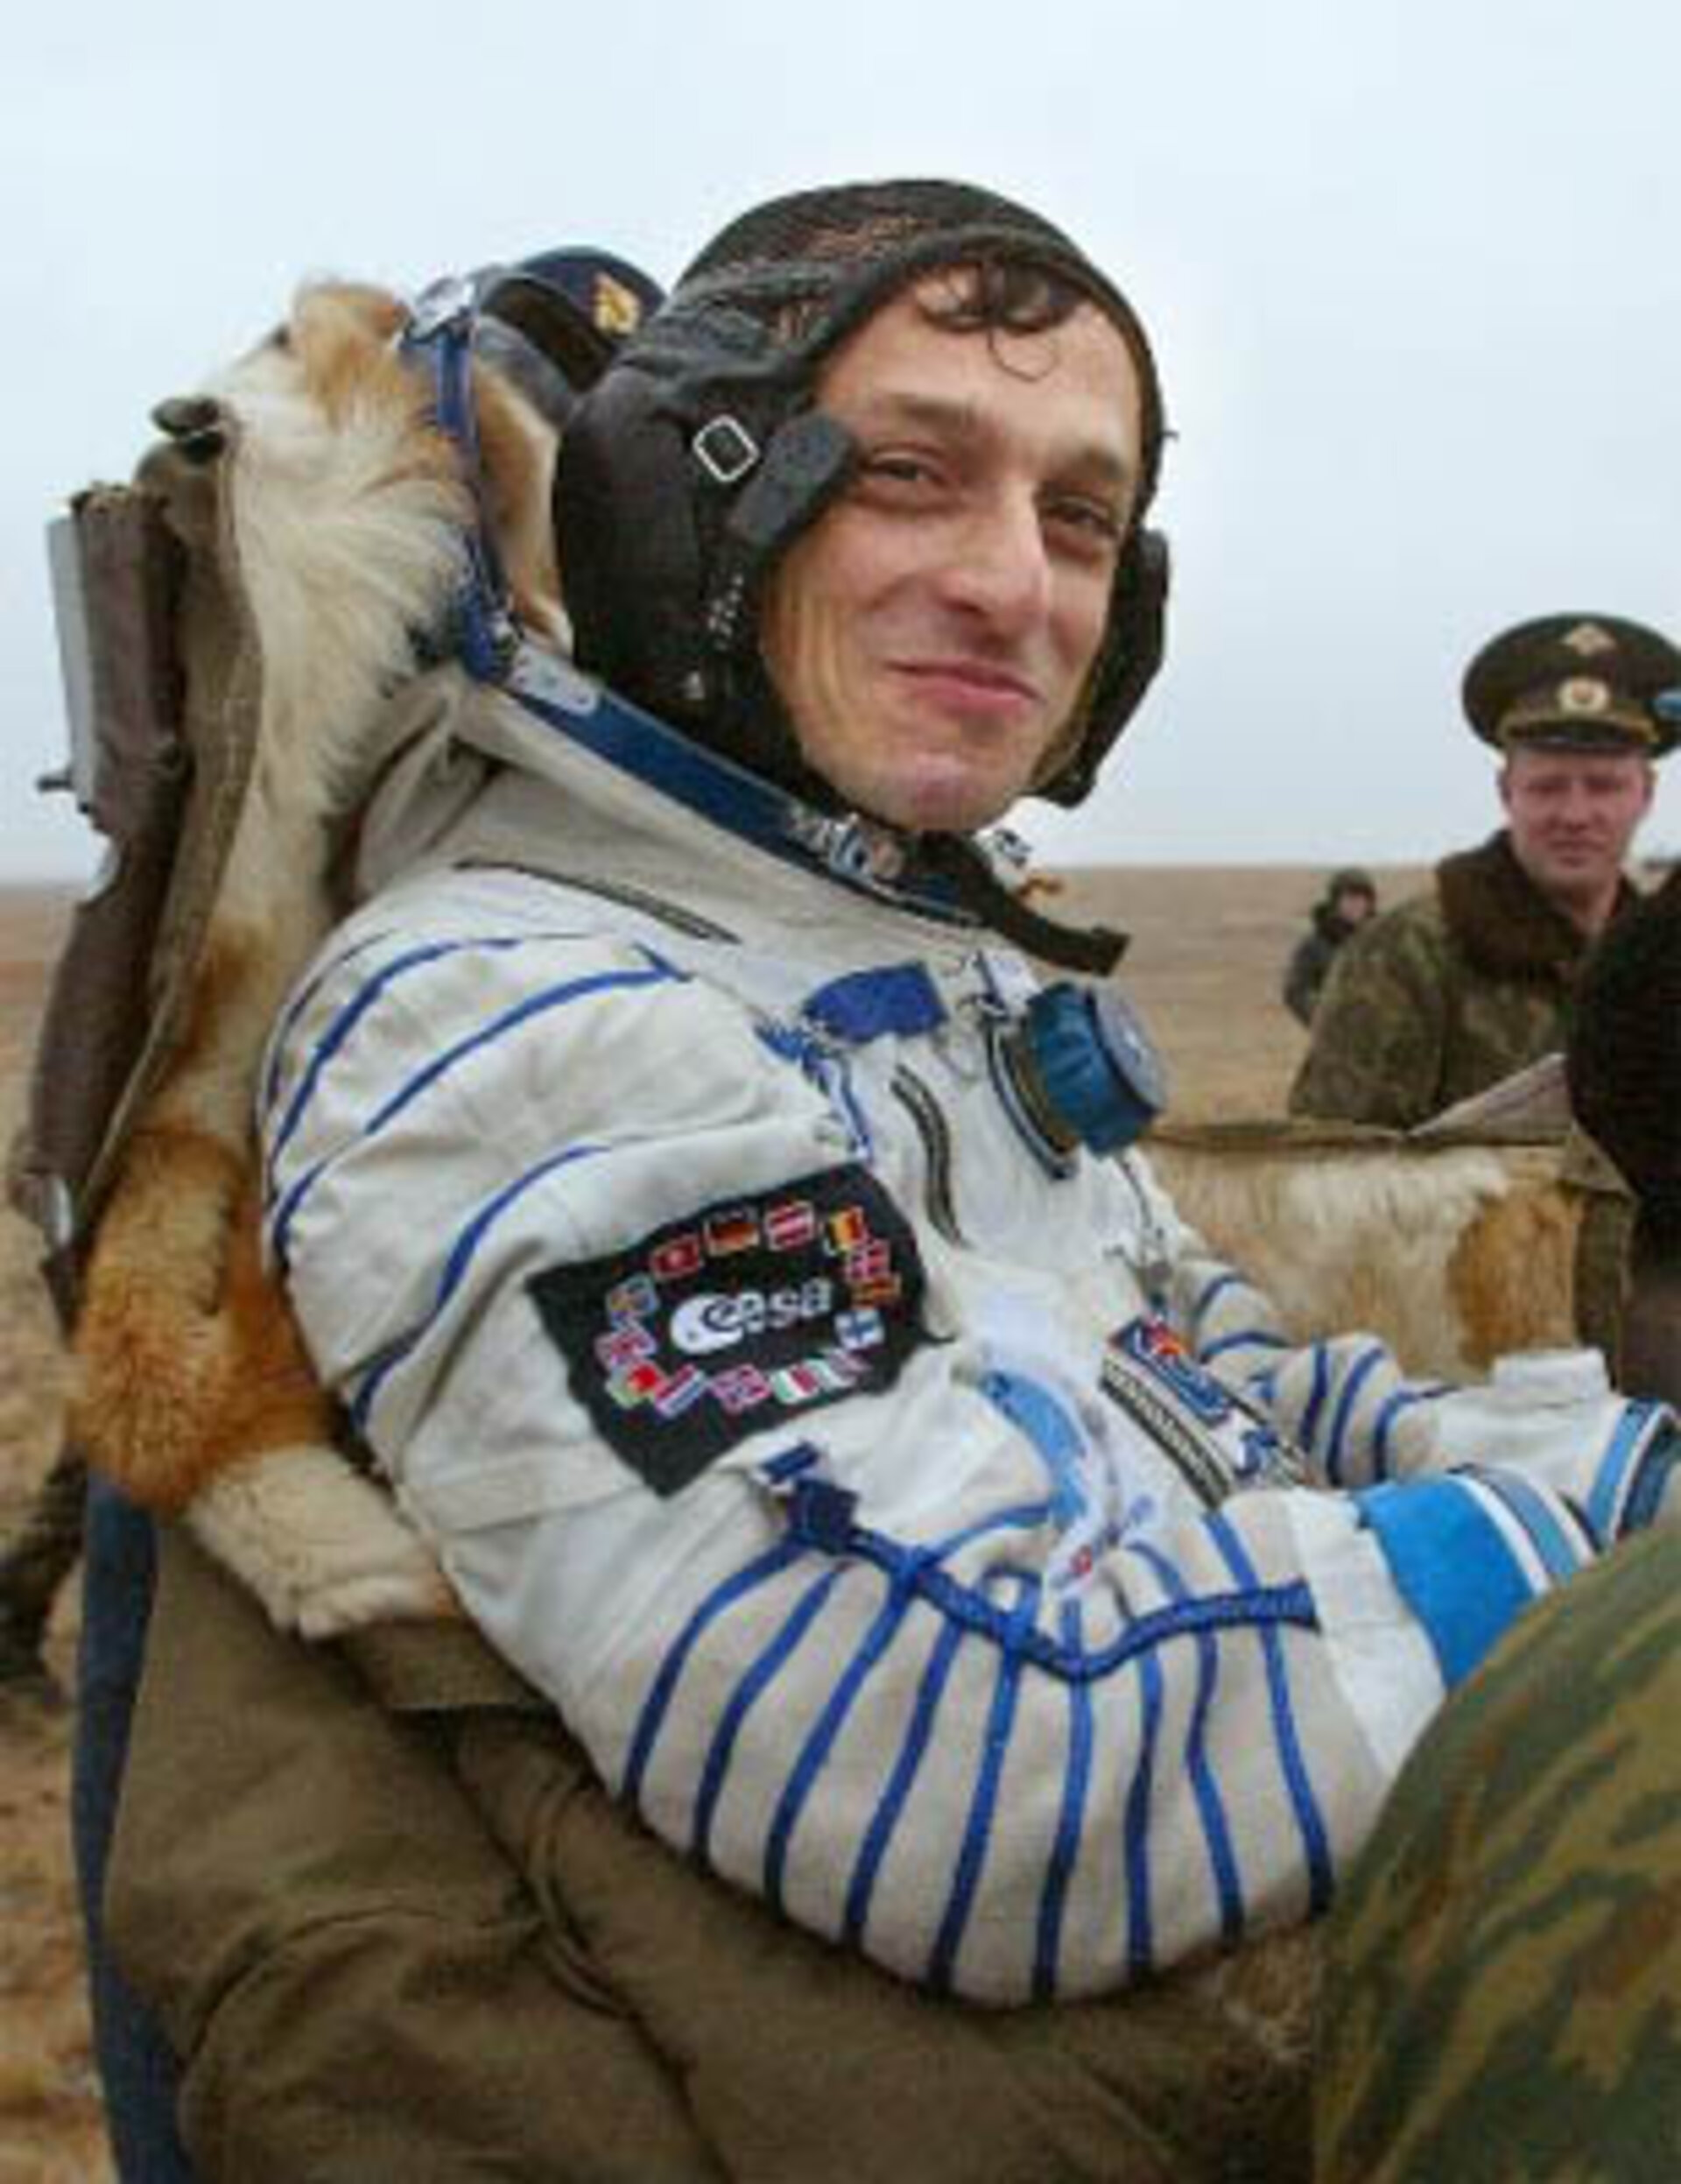 Spanish astronaut Pedro Duque shortly after landing